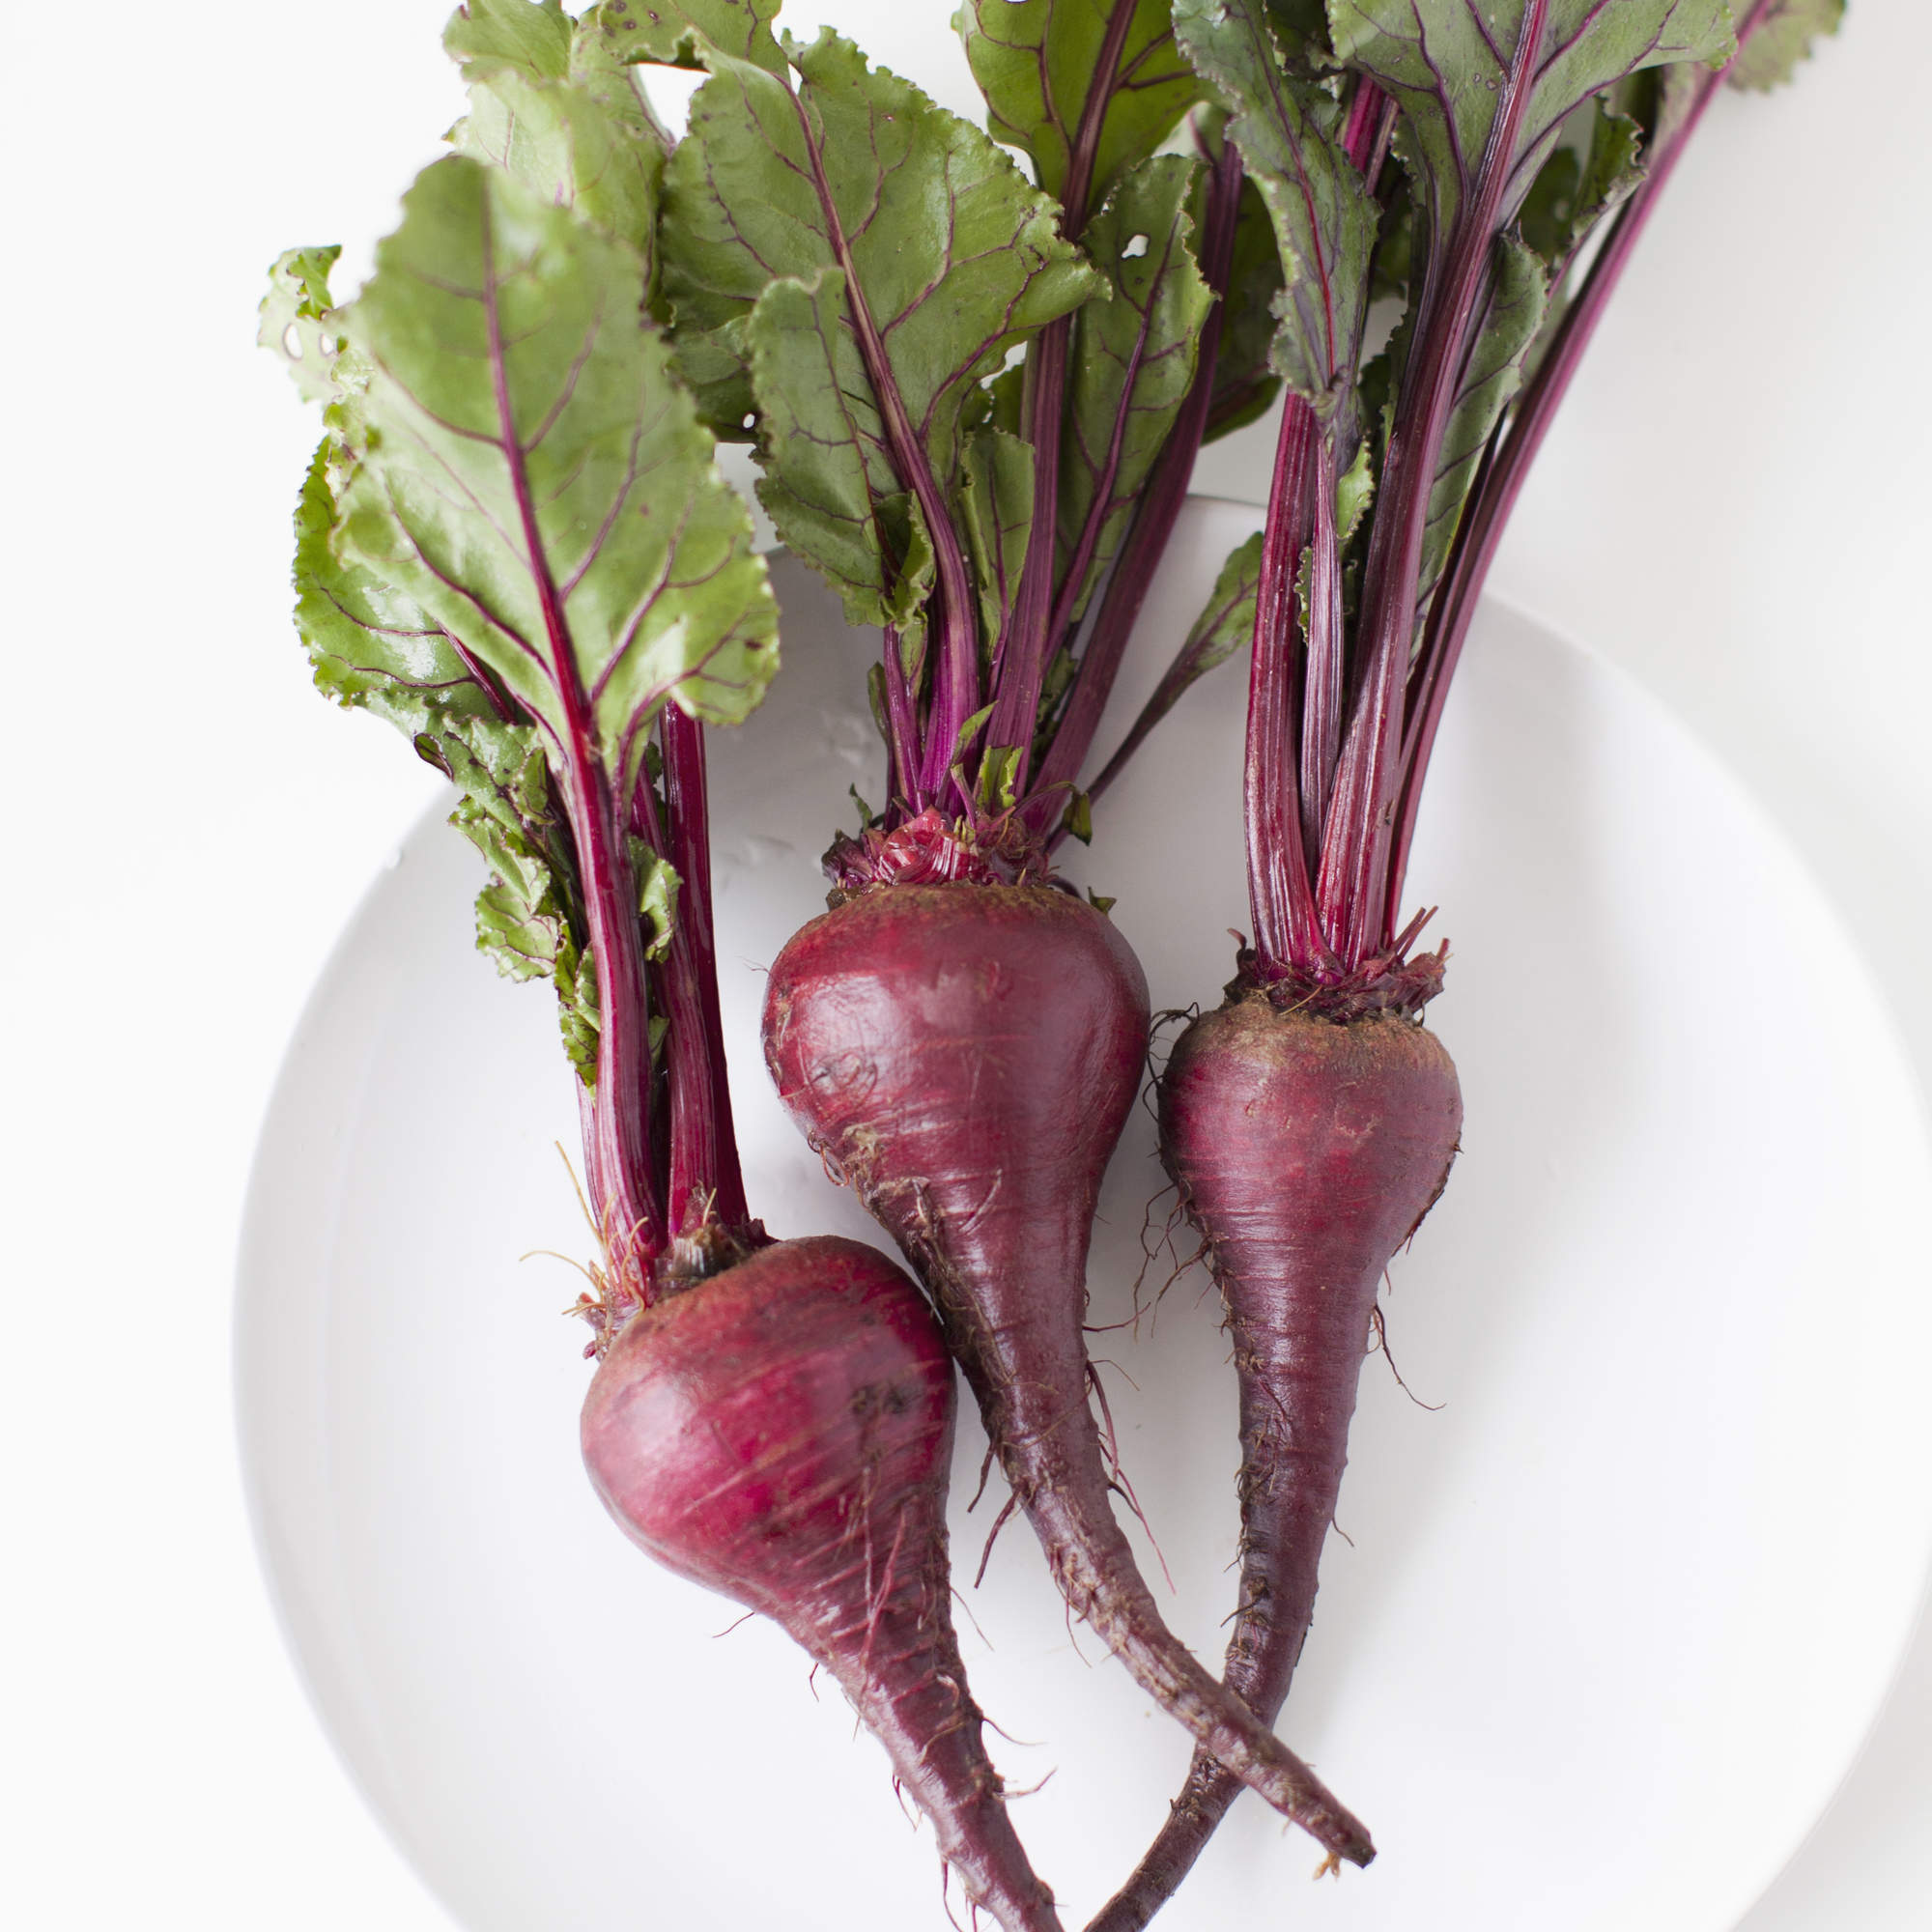 8 Things That Happen to Your Body When You Eat Beets